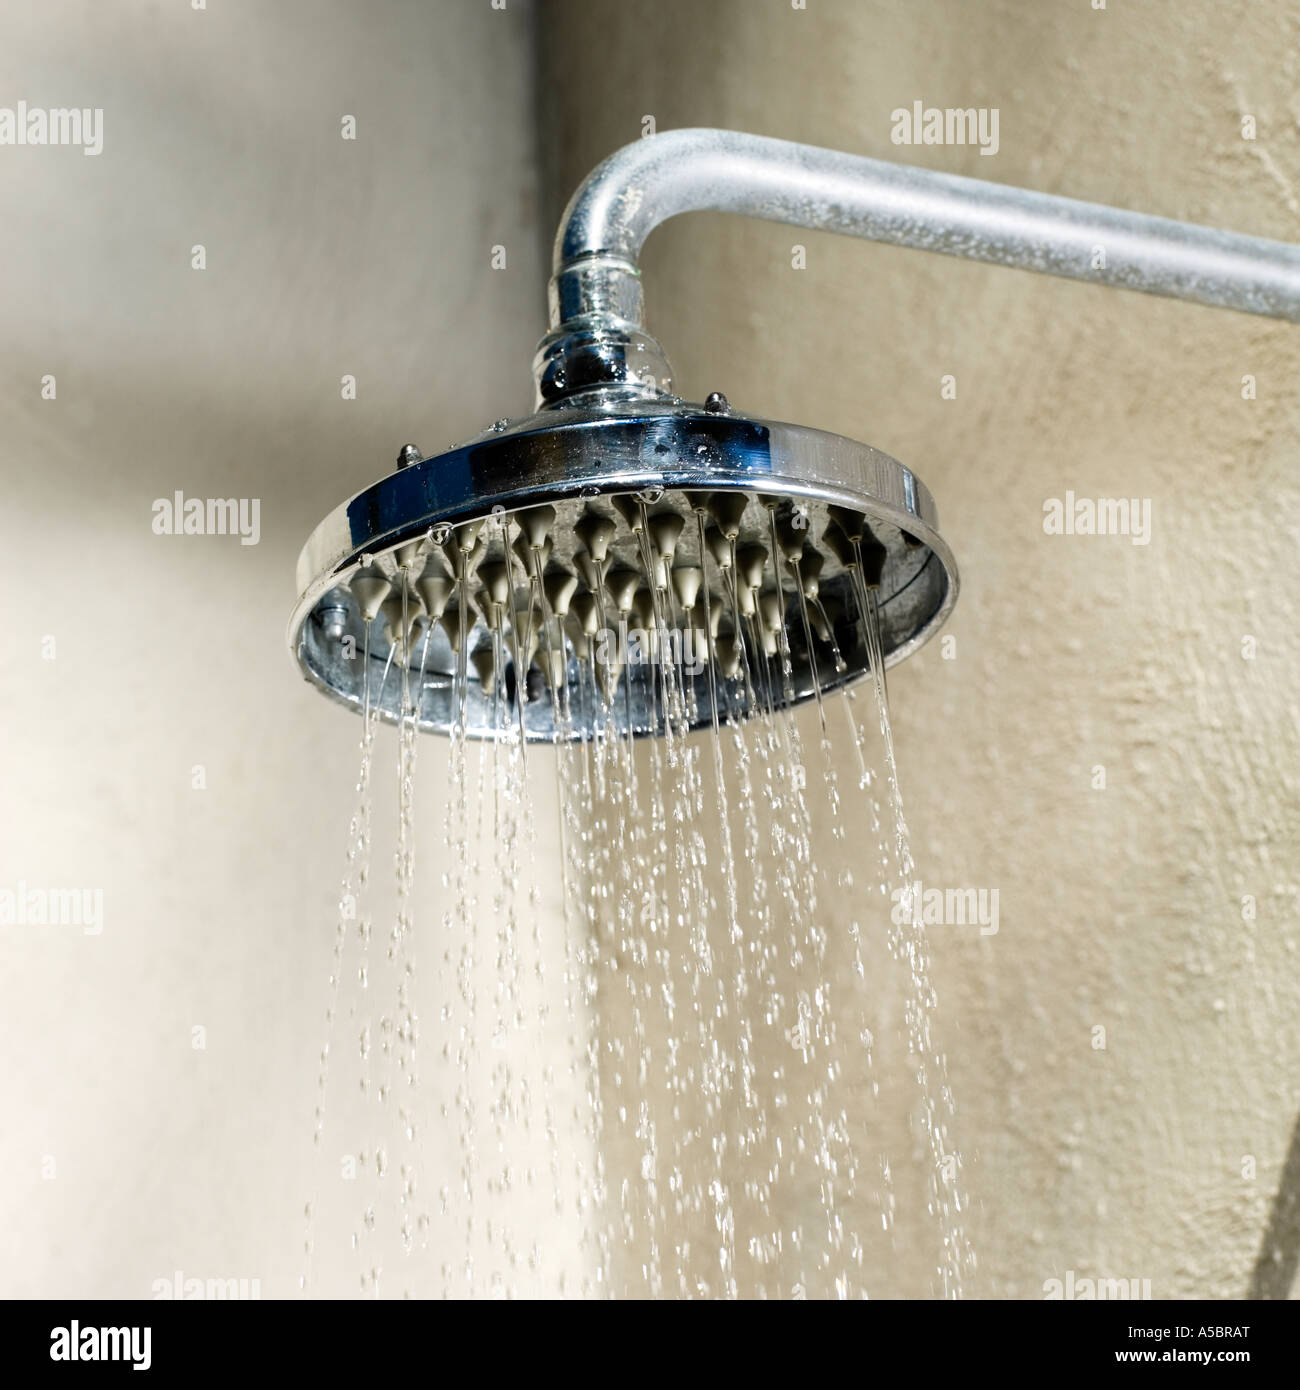 Water jet from wide shower head conservation shortages and ...